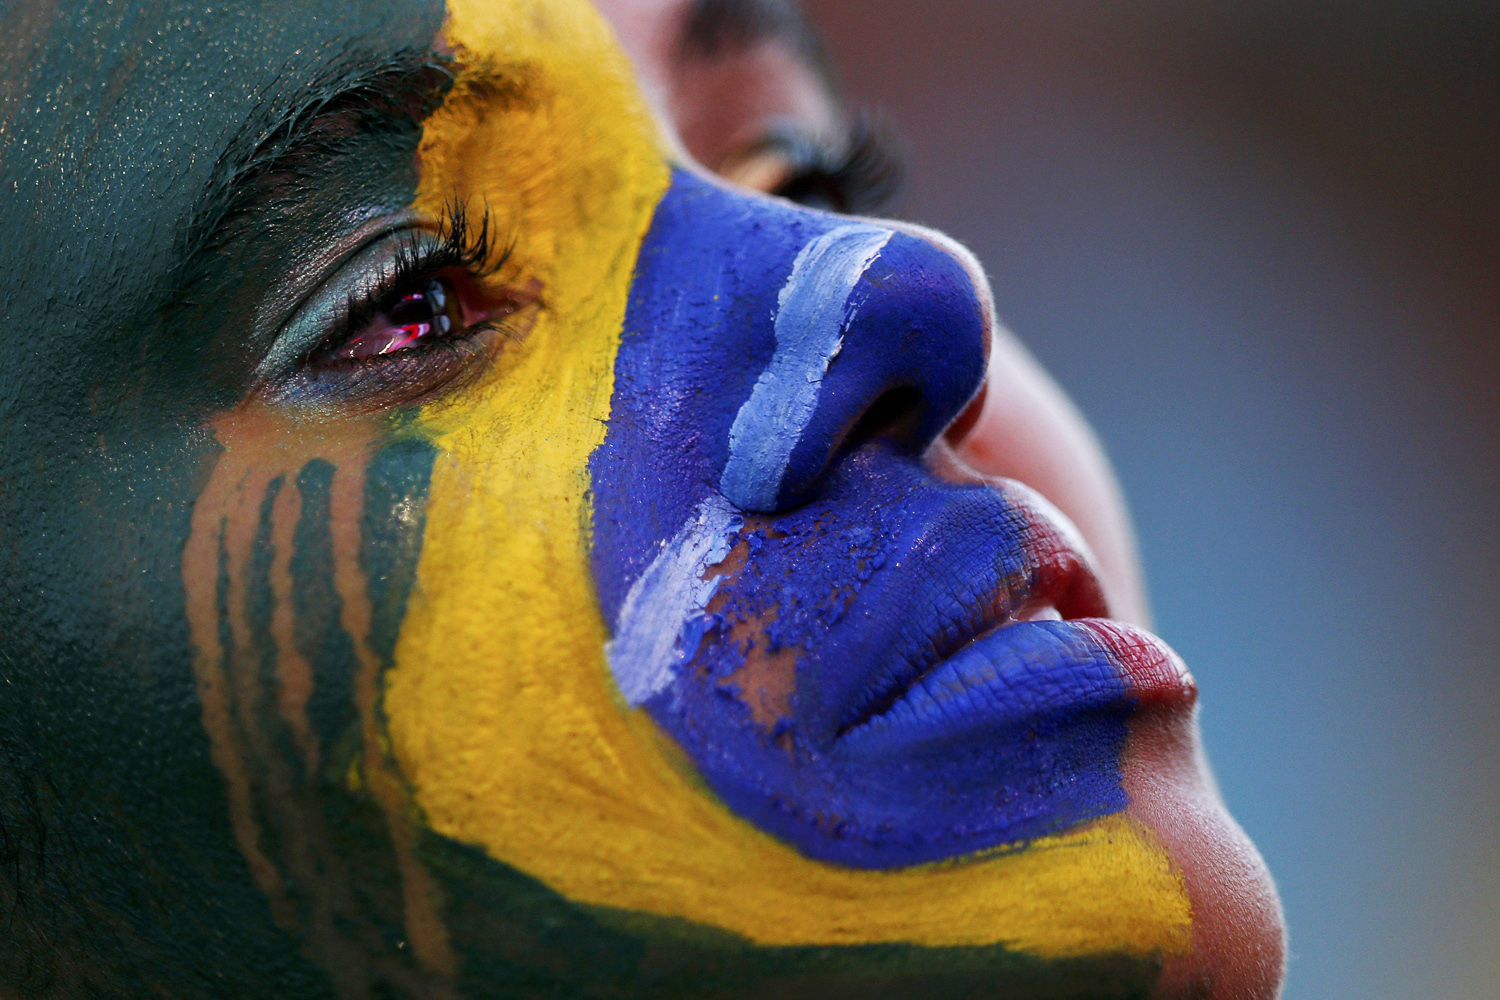 Jul. 8, 2014. A Brazil fan cries as she watches the 2014 World Cup semi-final between Brazil and Germany at a fan area in Brasilia. Germany scored five goals in 18 astonishing first-half minutes on their way to a 7-1 semi-final mauling of Brazil.